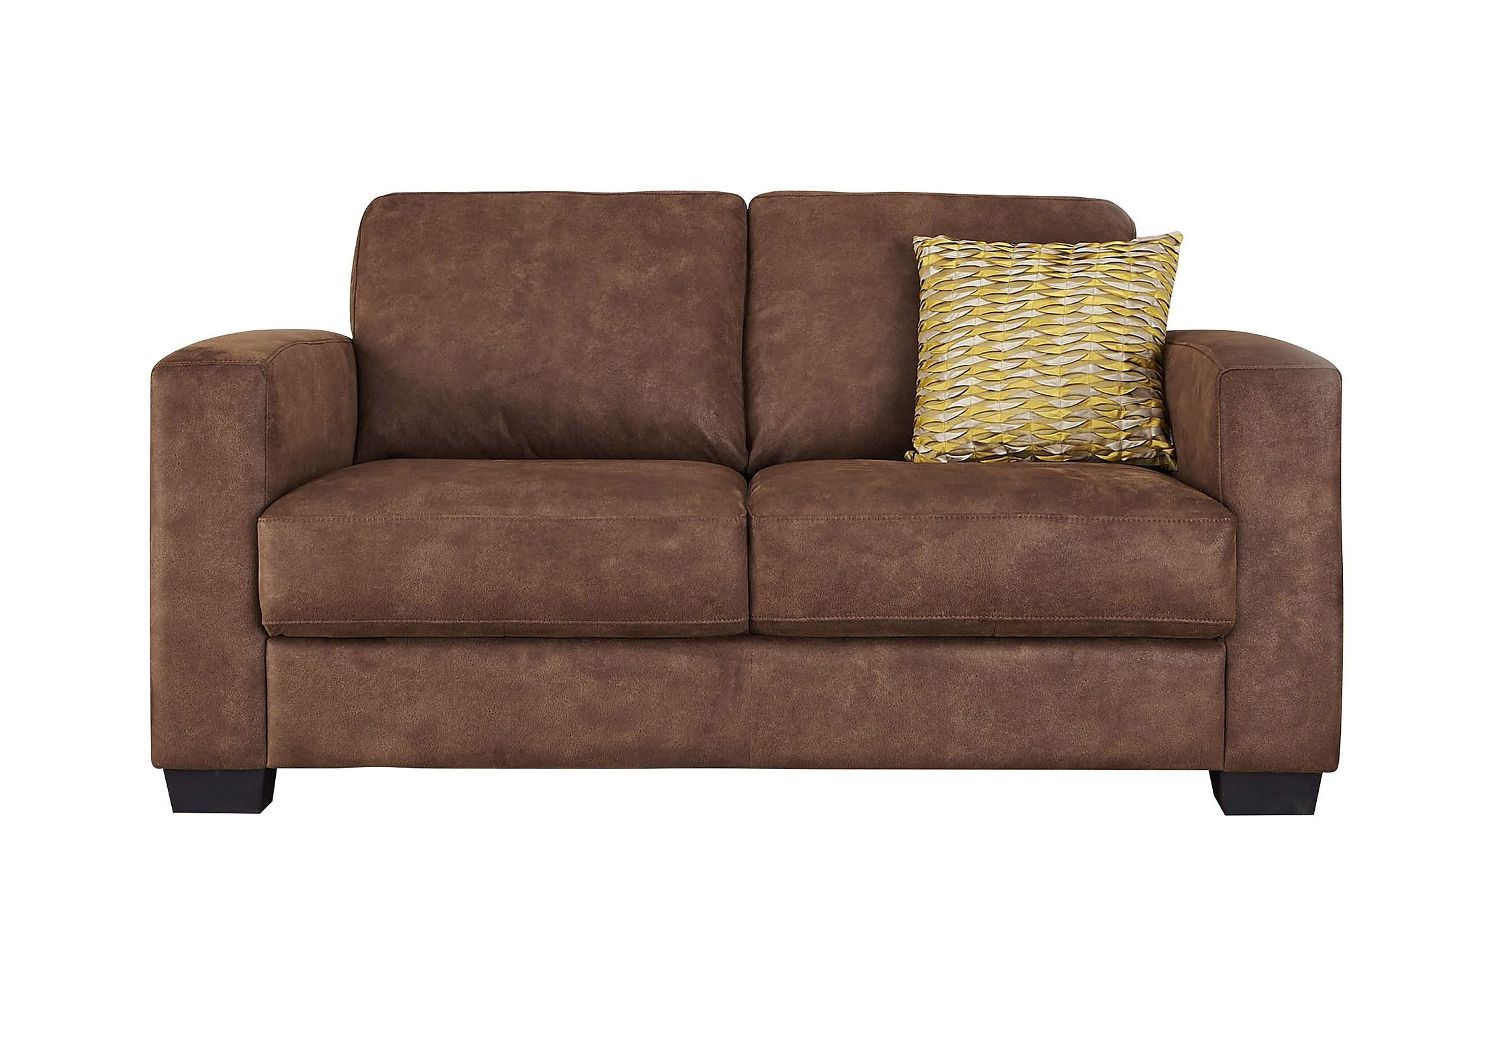 Two Seater Sofa How To Choose The Best Out There Armchair Furniture Luxury Sofa Modern Cheap Leather Sofas